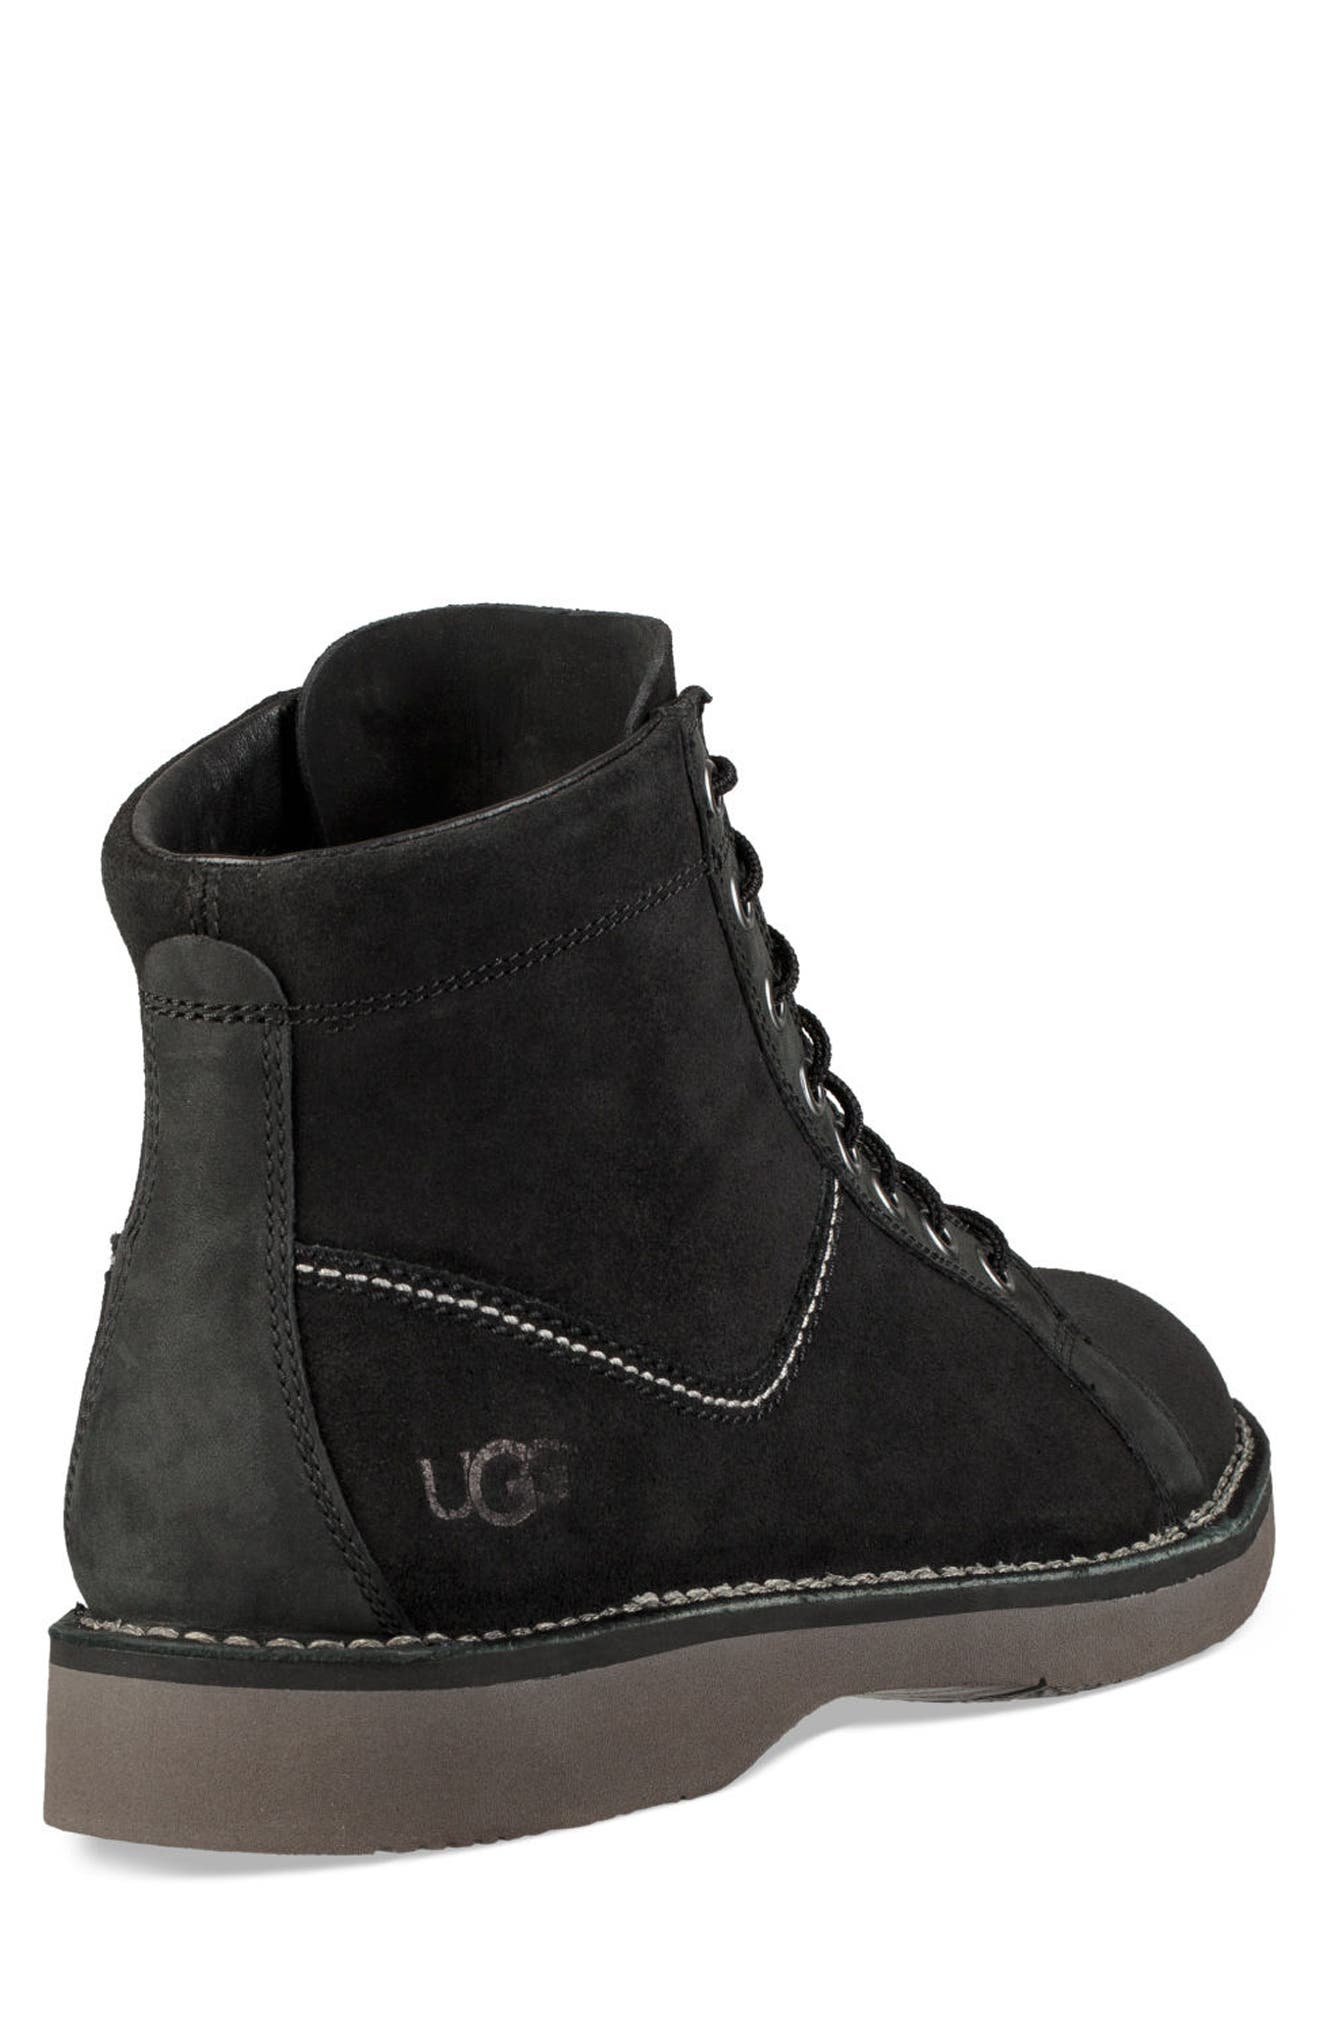 Camino Plain Toe Boot,                             Alternate thumbnail 2, color,                             BLACK